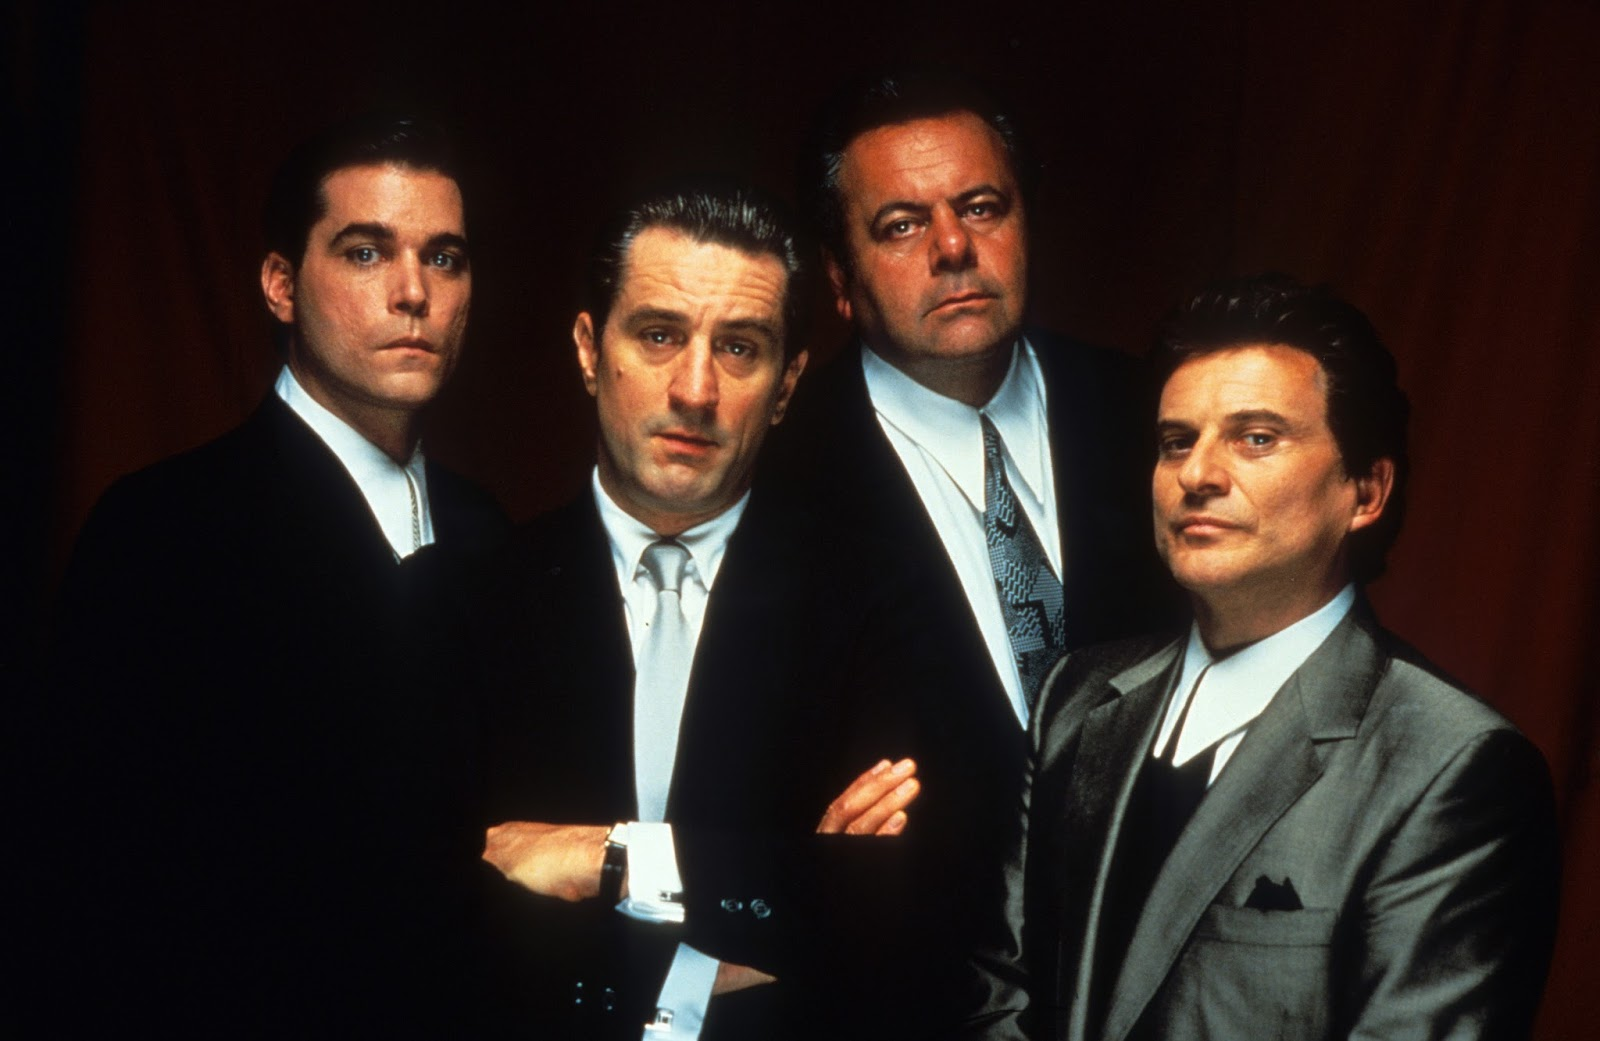 Ray Liotta, Robert De Niro, Paul Sorvino, and Joe Pesci publicity portrait for the film 'Goodfellas', 1990. (Photo by Warner Brothers/Getty Images)